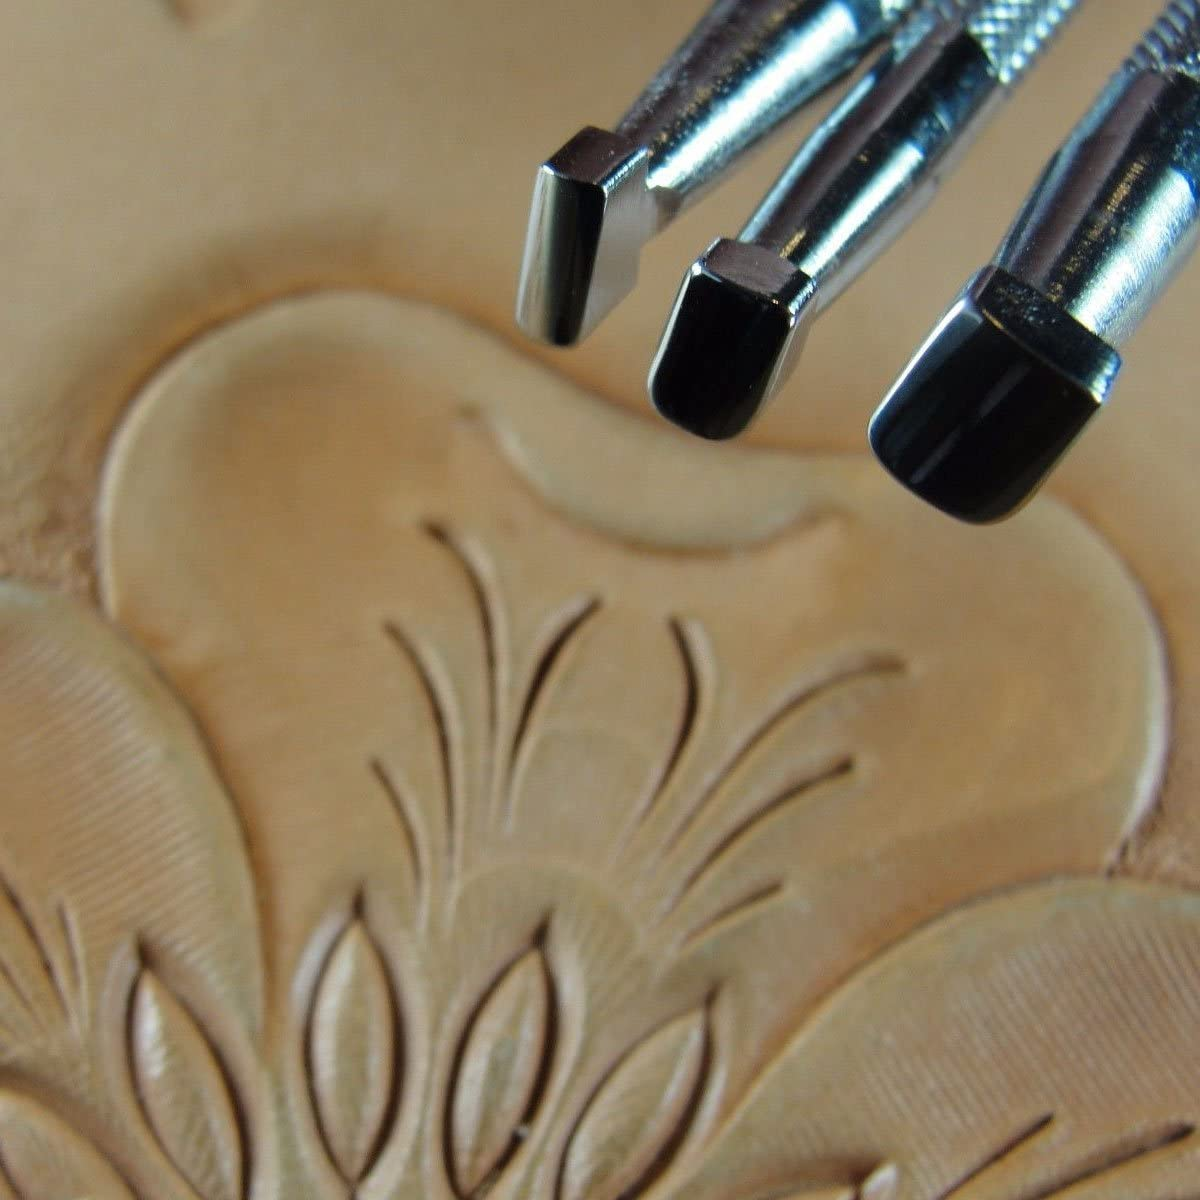 Leather Stamping Tools, 5-Piece Set Steel Craft Japan Figure Carving Stamps